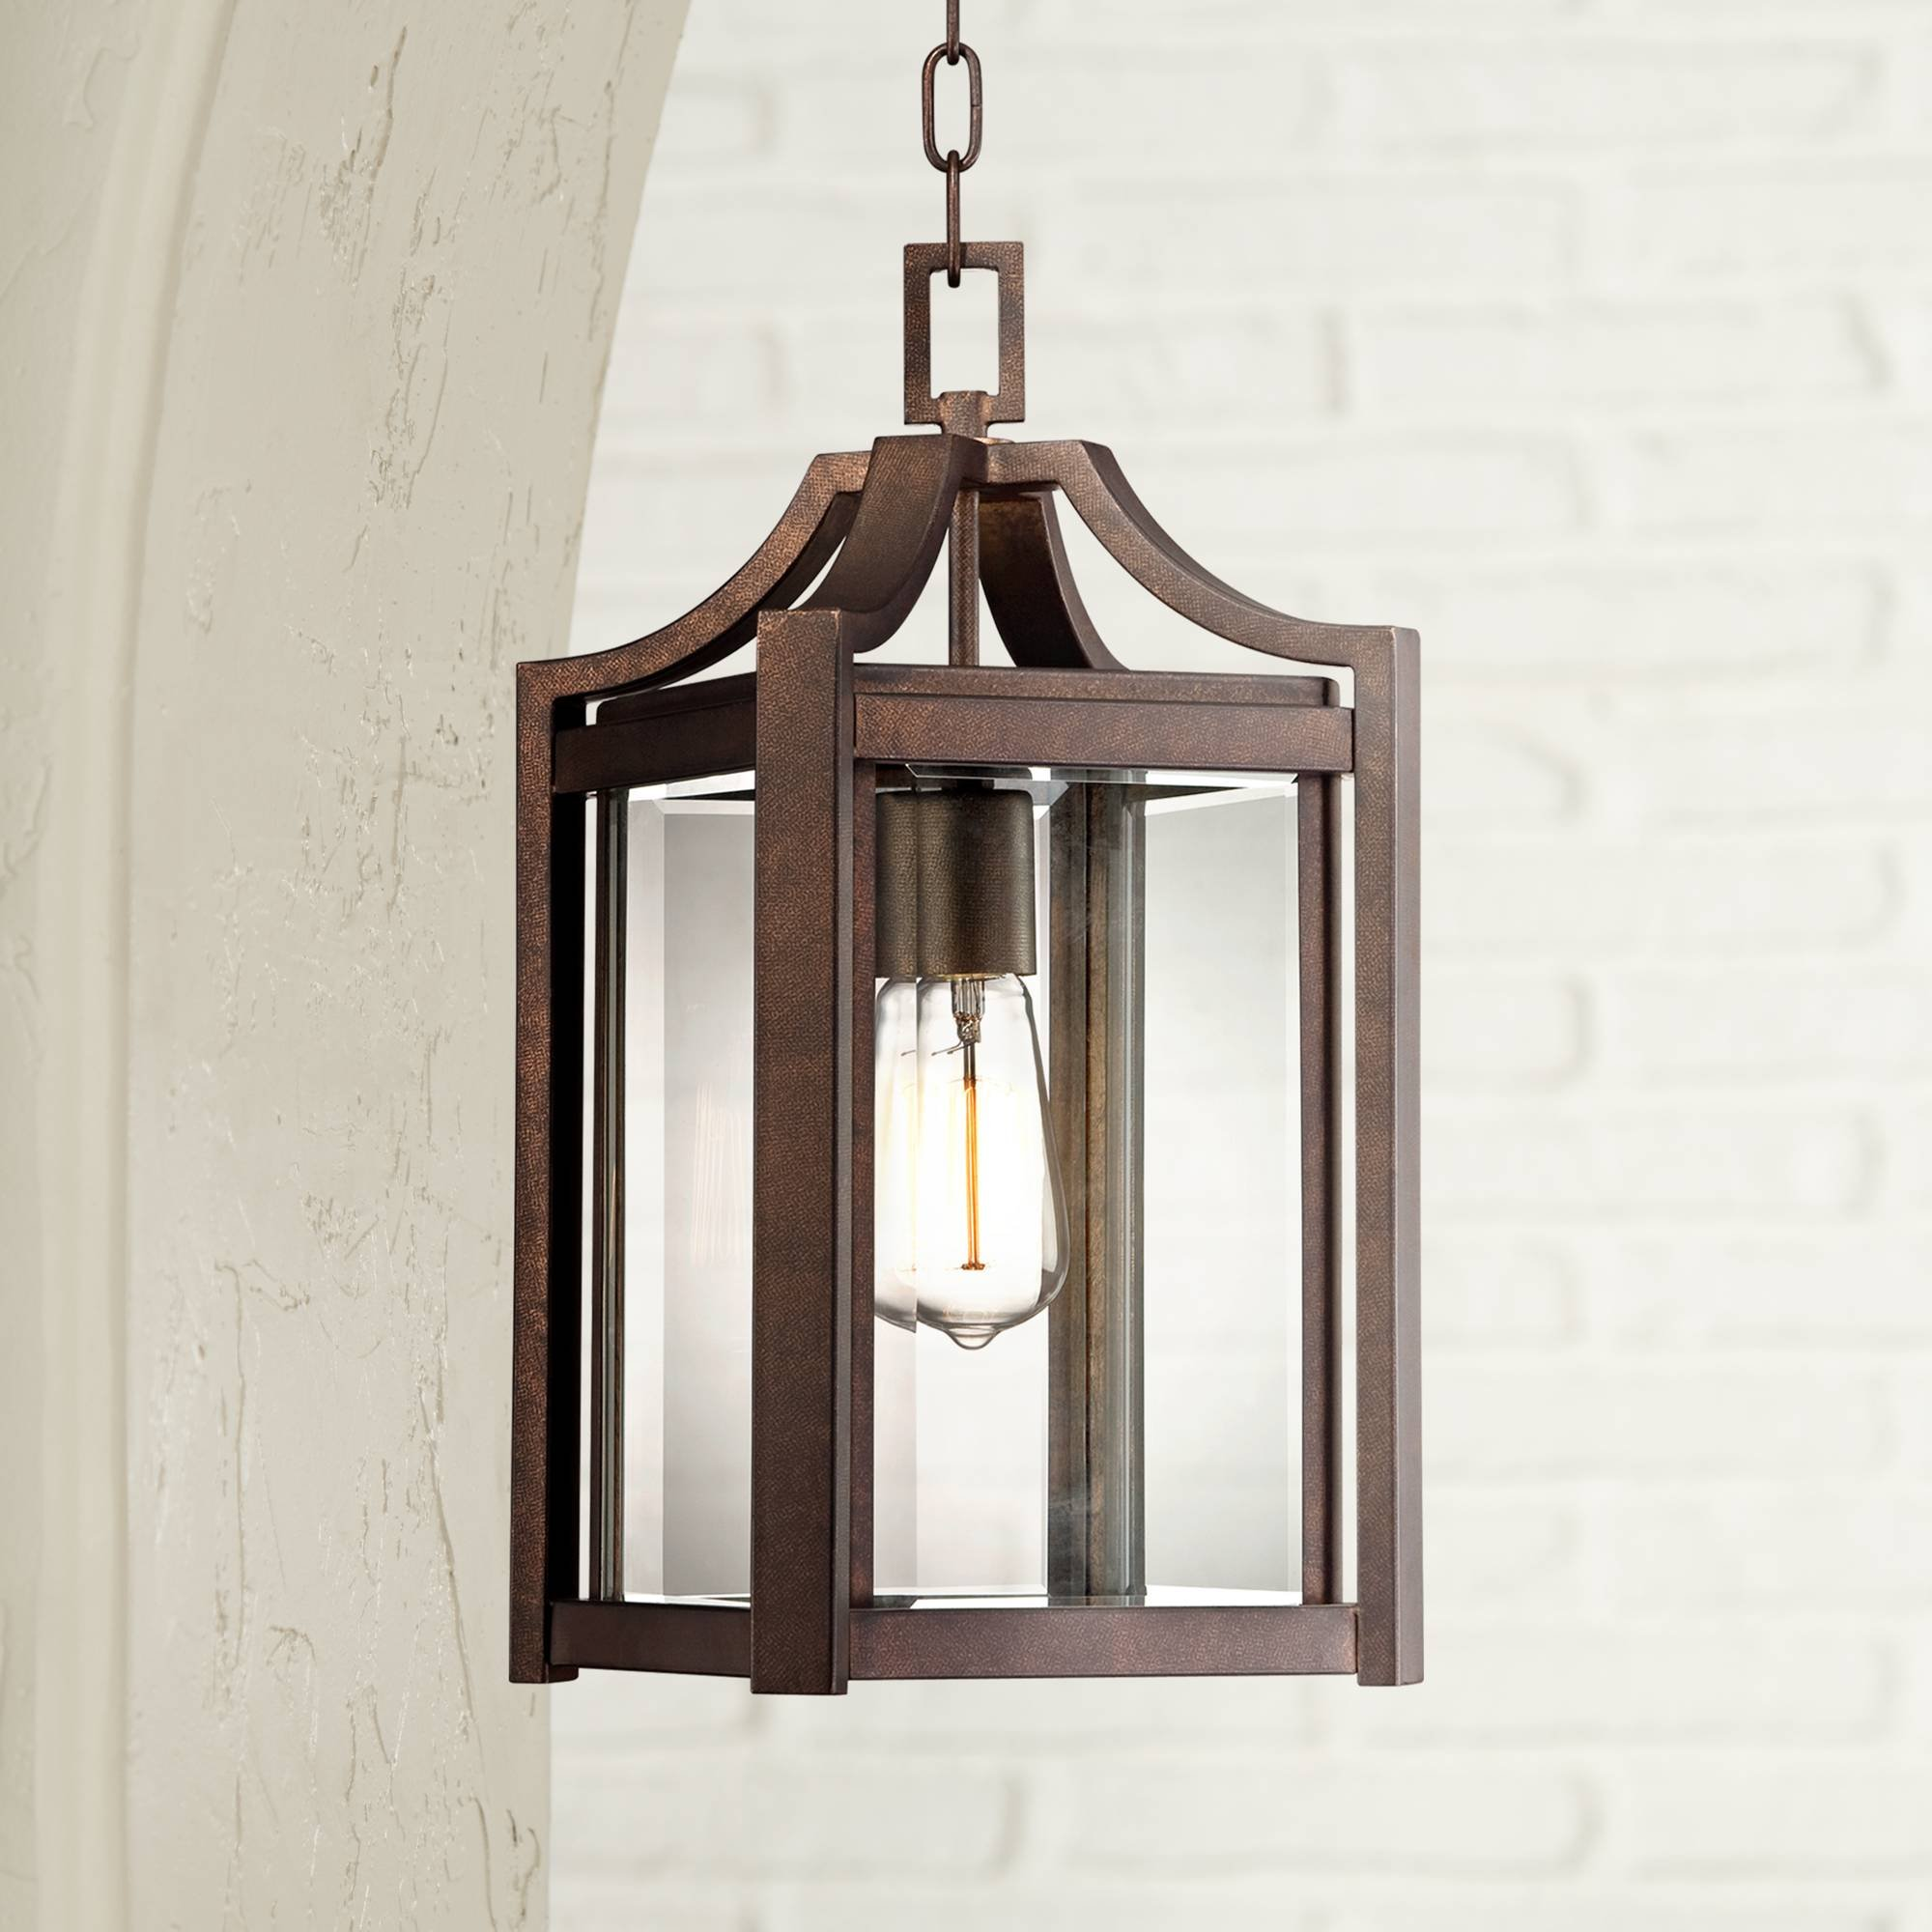 Rockford Modern Outdoor Ceiling Light Hanging Rustic Bronze 17'' Clear Glass Damp Rated for Exterior Porch Entryway - Franklin Iron Works